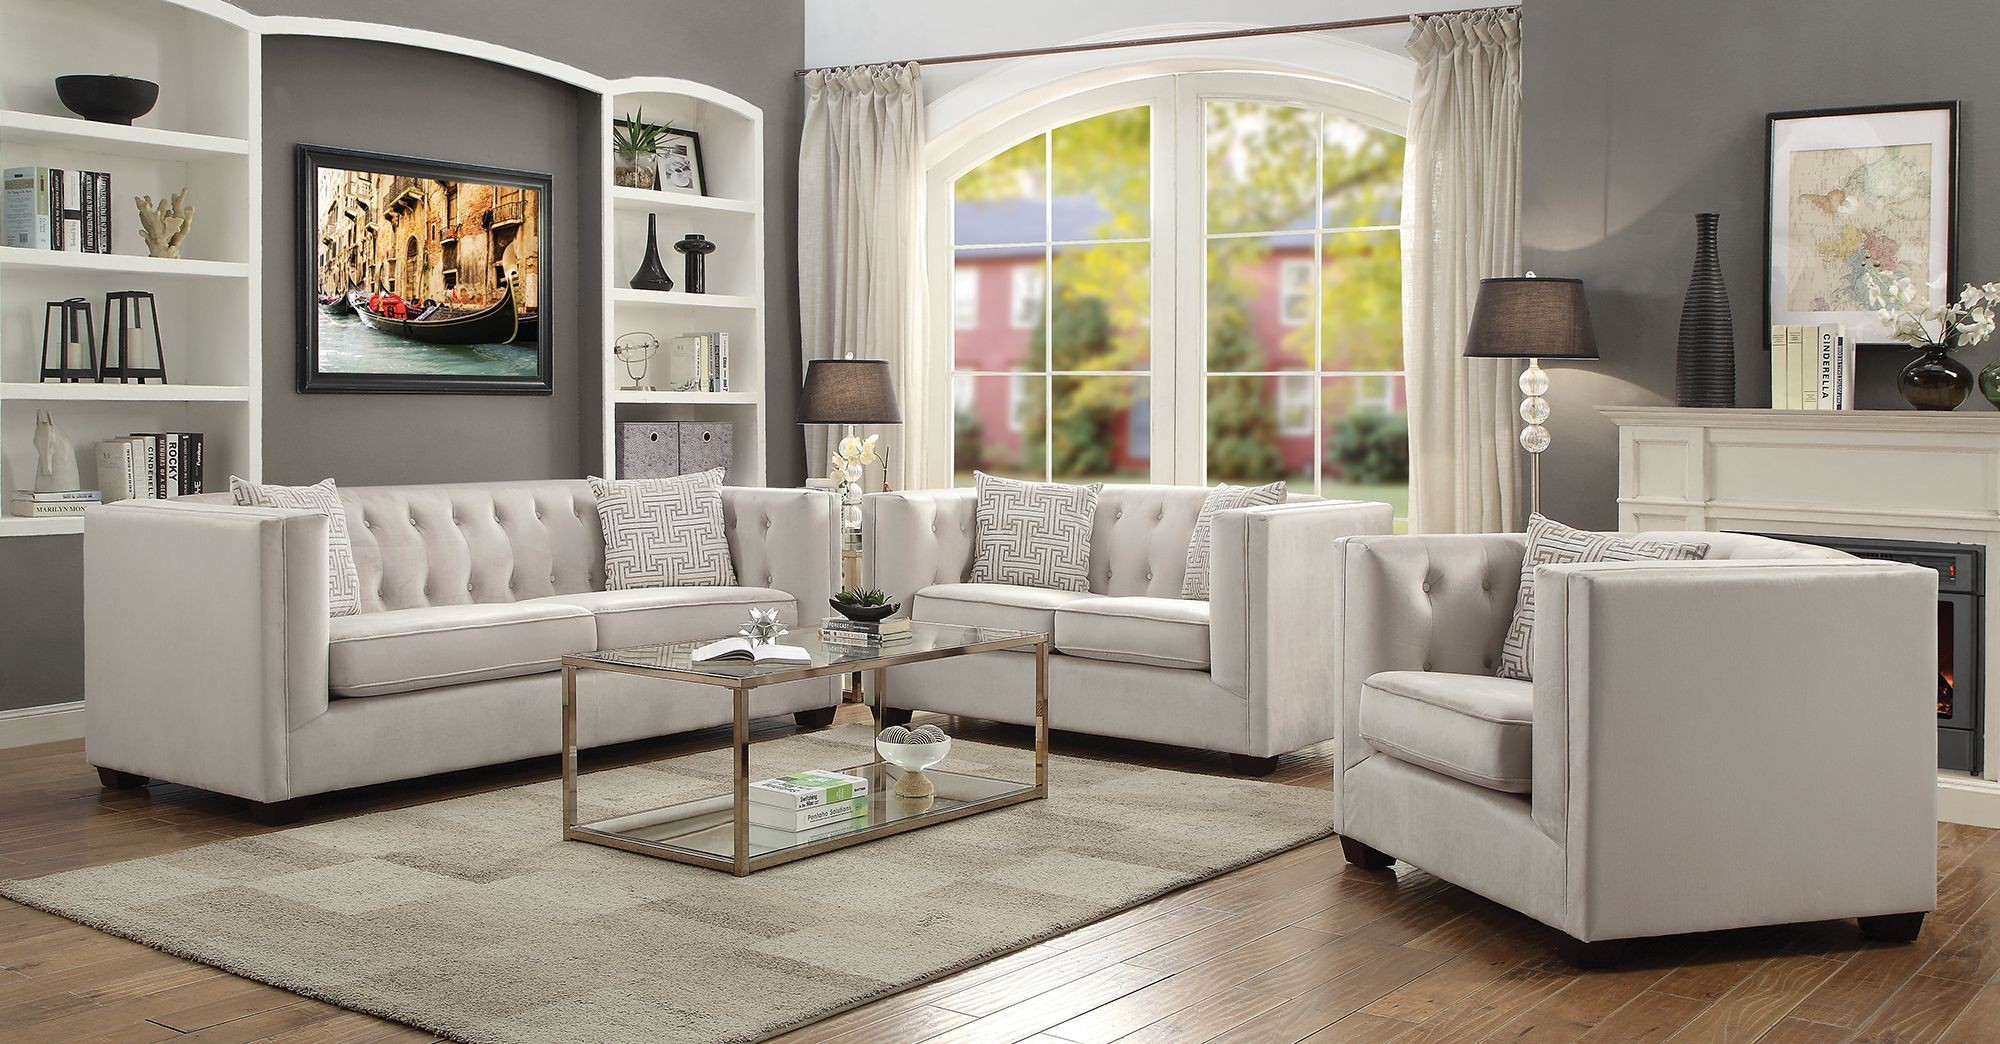 Sunderland Ivory Living Room Set From Coaster